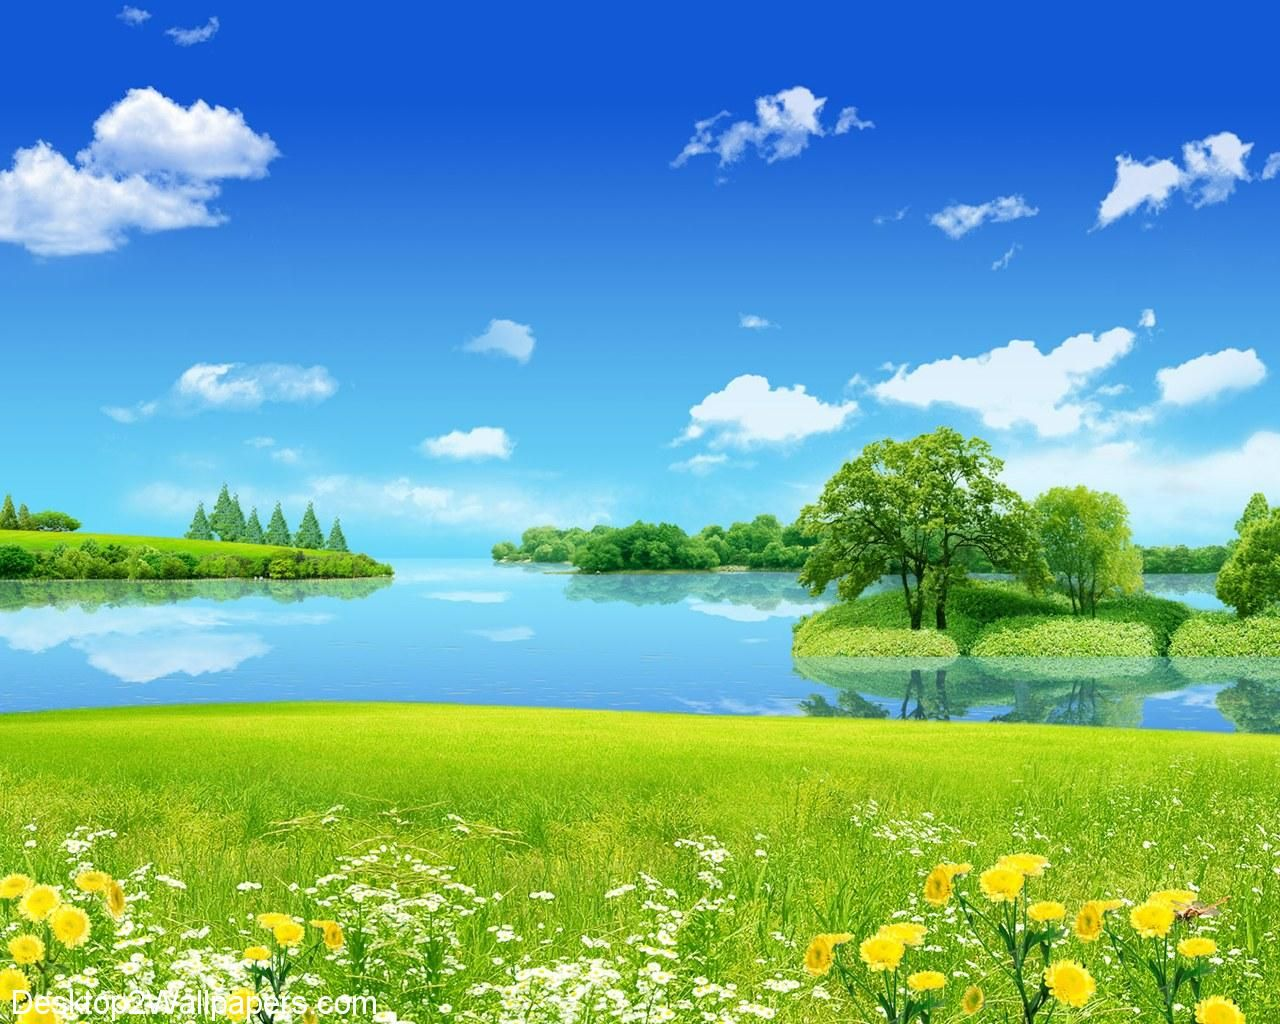 summer dreamland wallpaper free nature hd desktop | hd desktop